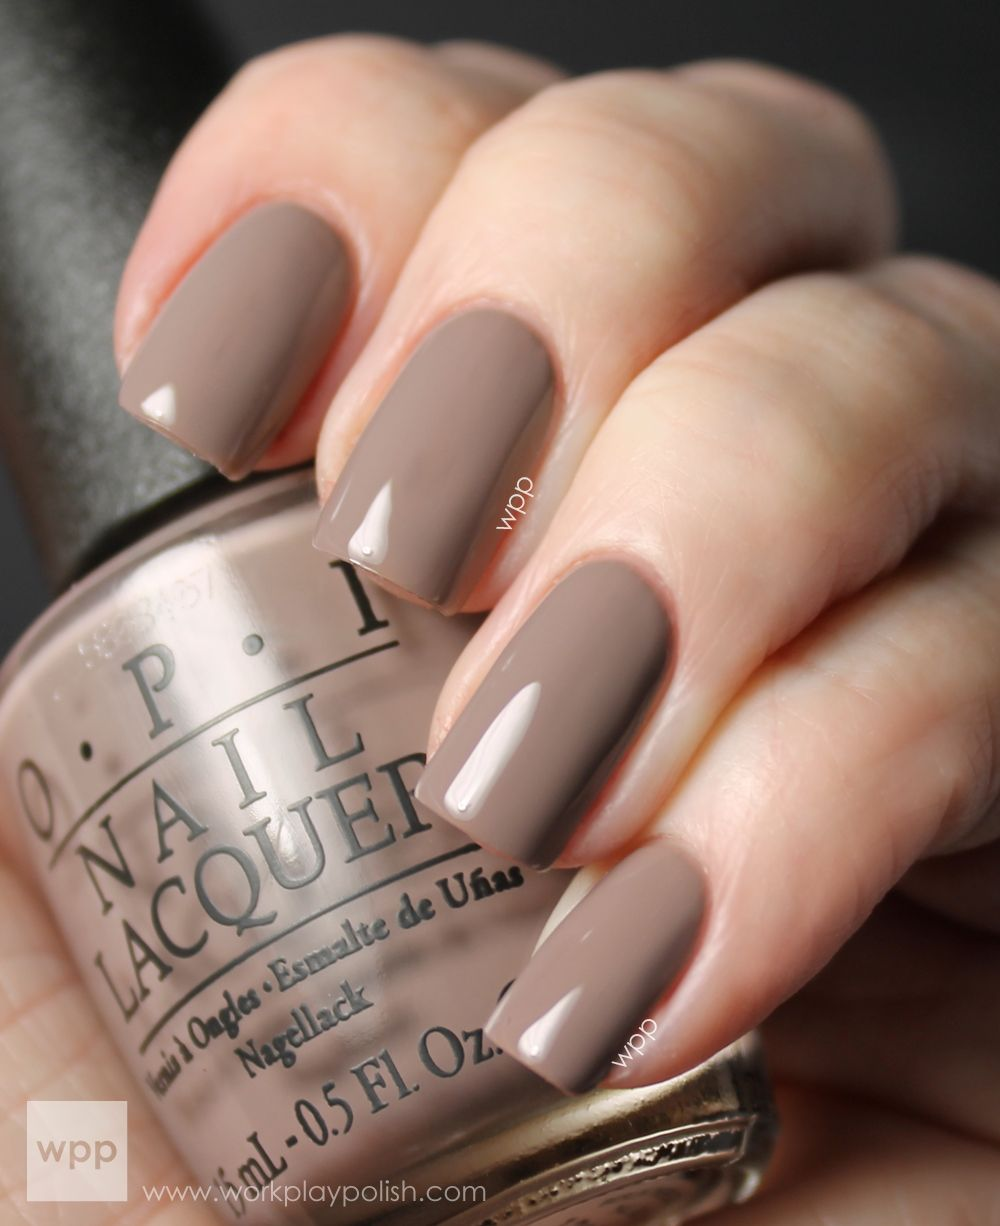 30 Simple Nail Art Designs That Are Hot Right Now!   Nails as in ...